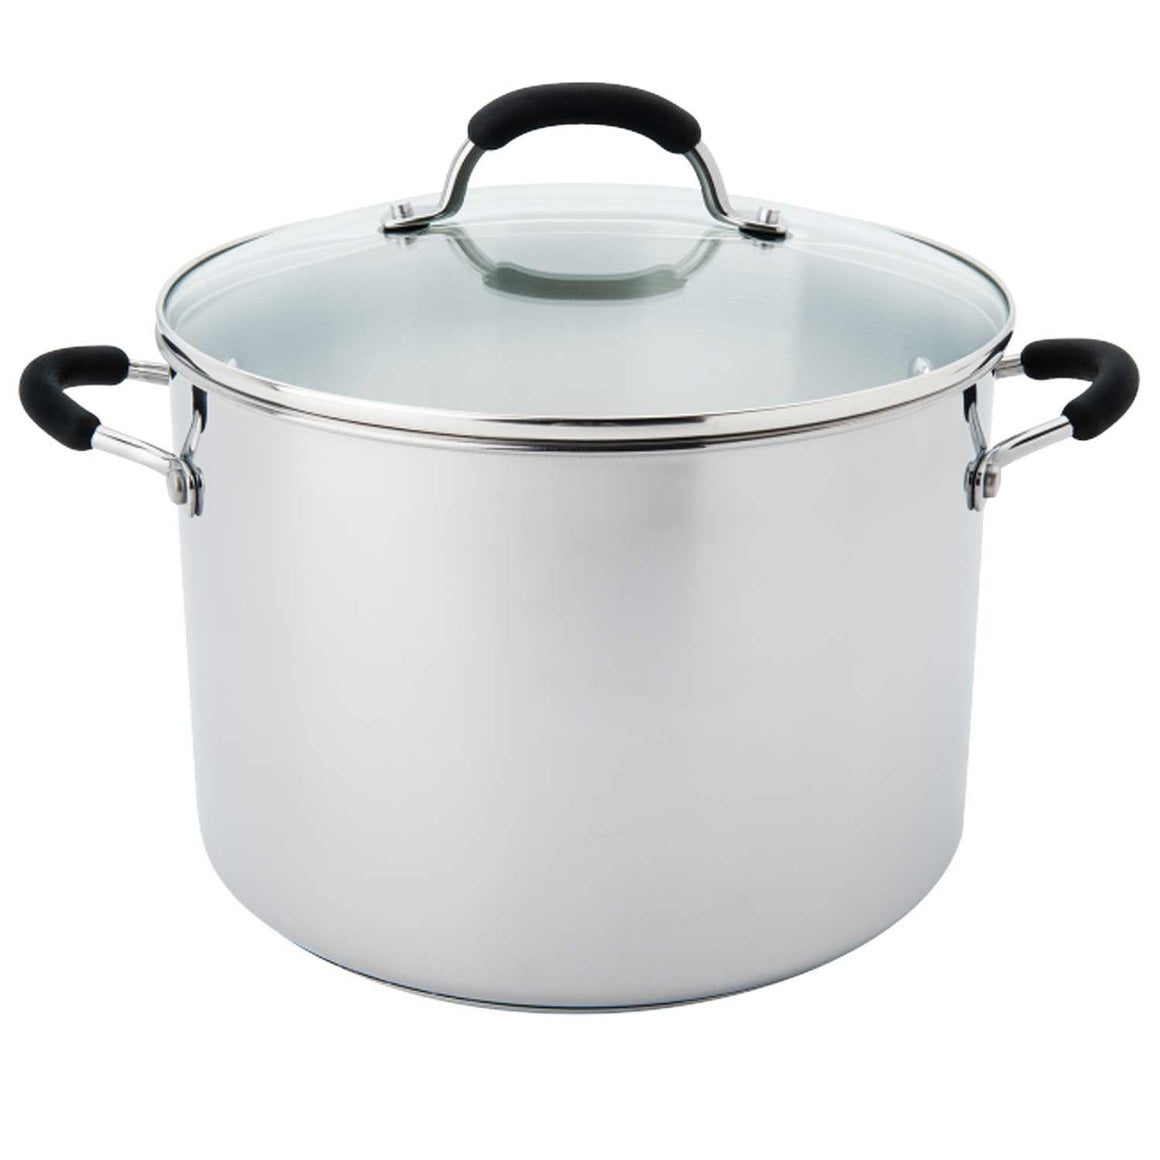 Raco Contemporary Stainless Steel Stockpot 26cm/9.5L - stuff-n-things